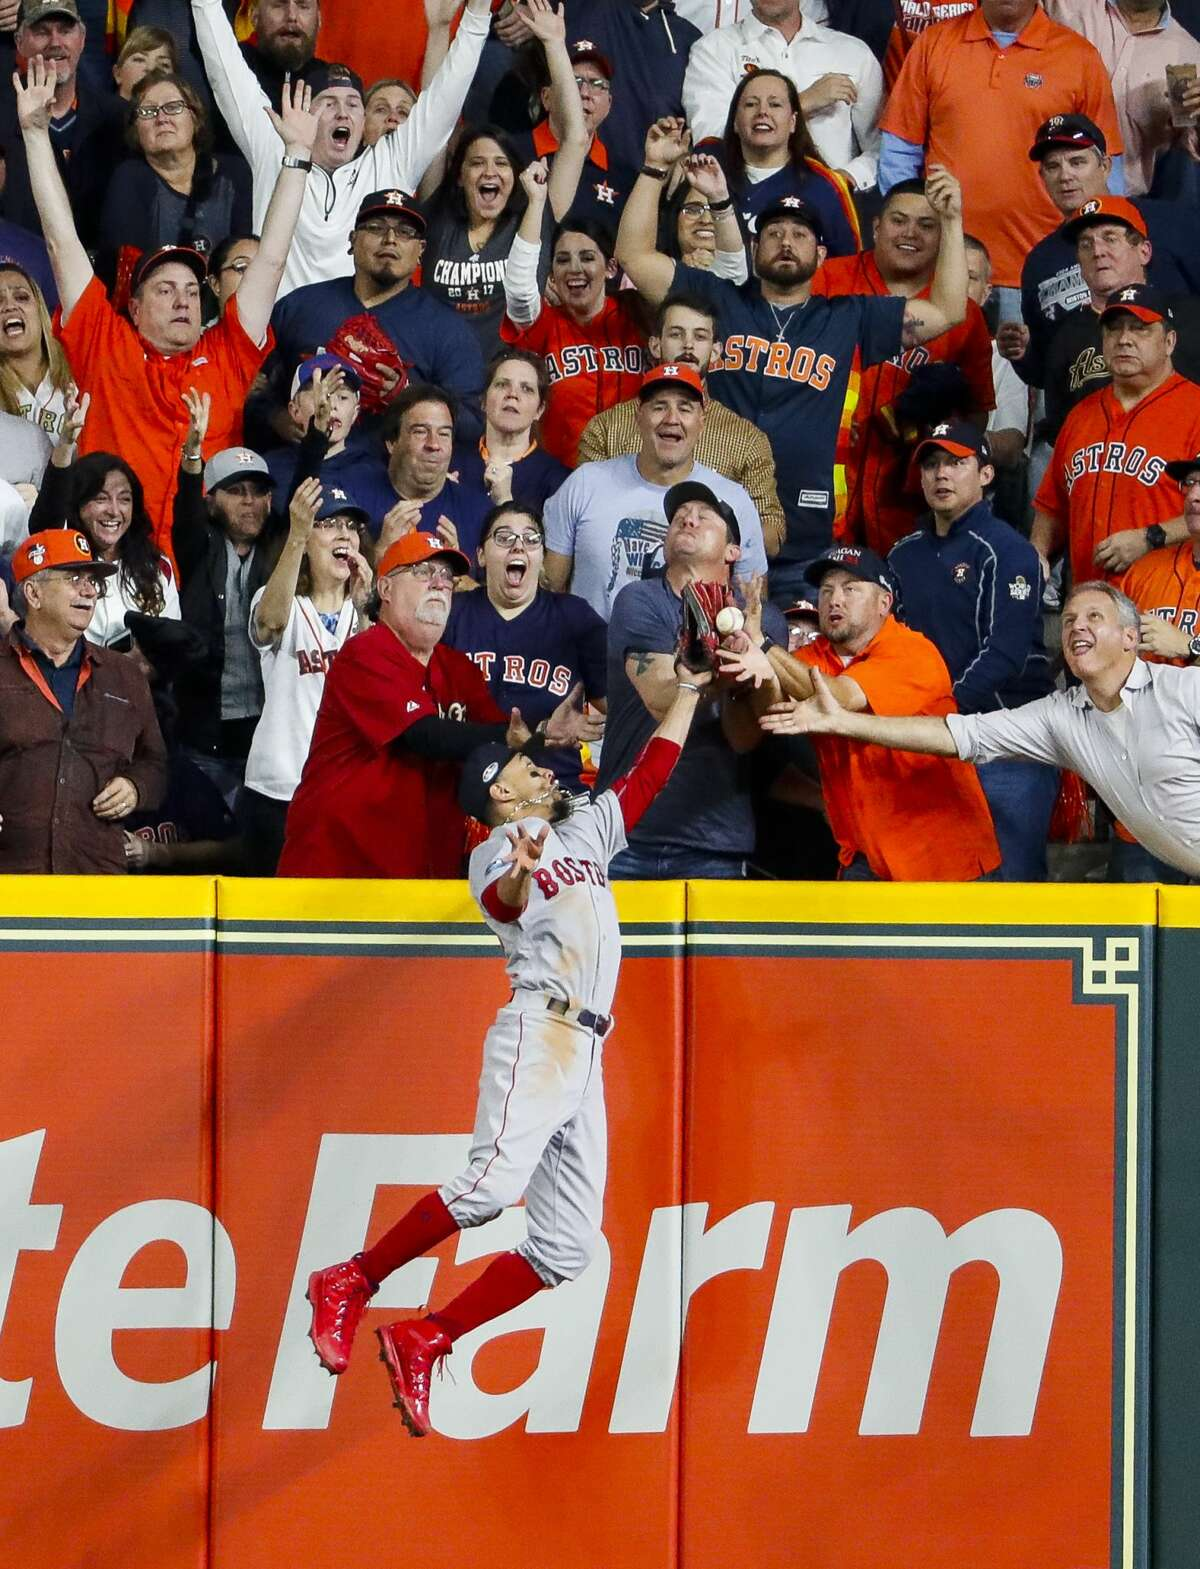 Boston Red Sox Mookie Betts (50) tries to catch a deep hit over the wall by Houston Astros designated hitter Jose Altuve (27) during the first inning of Game 4 of the American League Championship Series at Minute Maid Park on Wednesday, Oct. 17, 2018, in Houston. Altuve would be called out on the play due to fan interference.